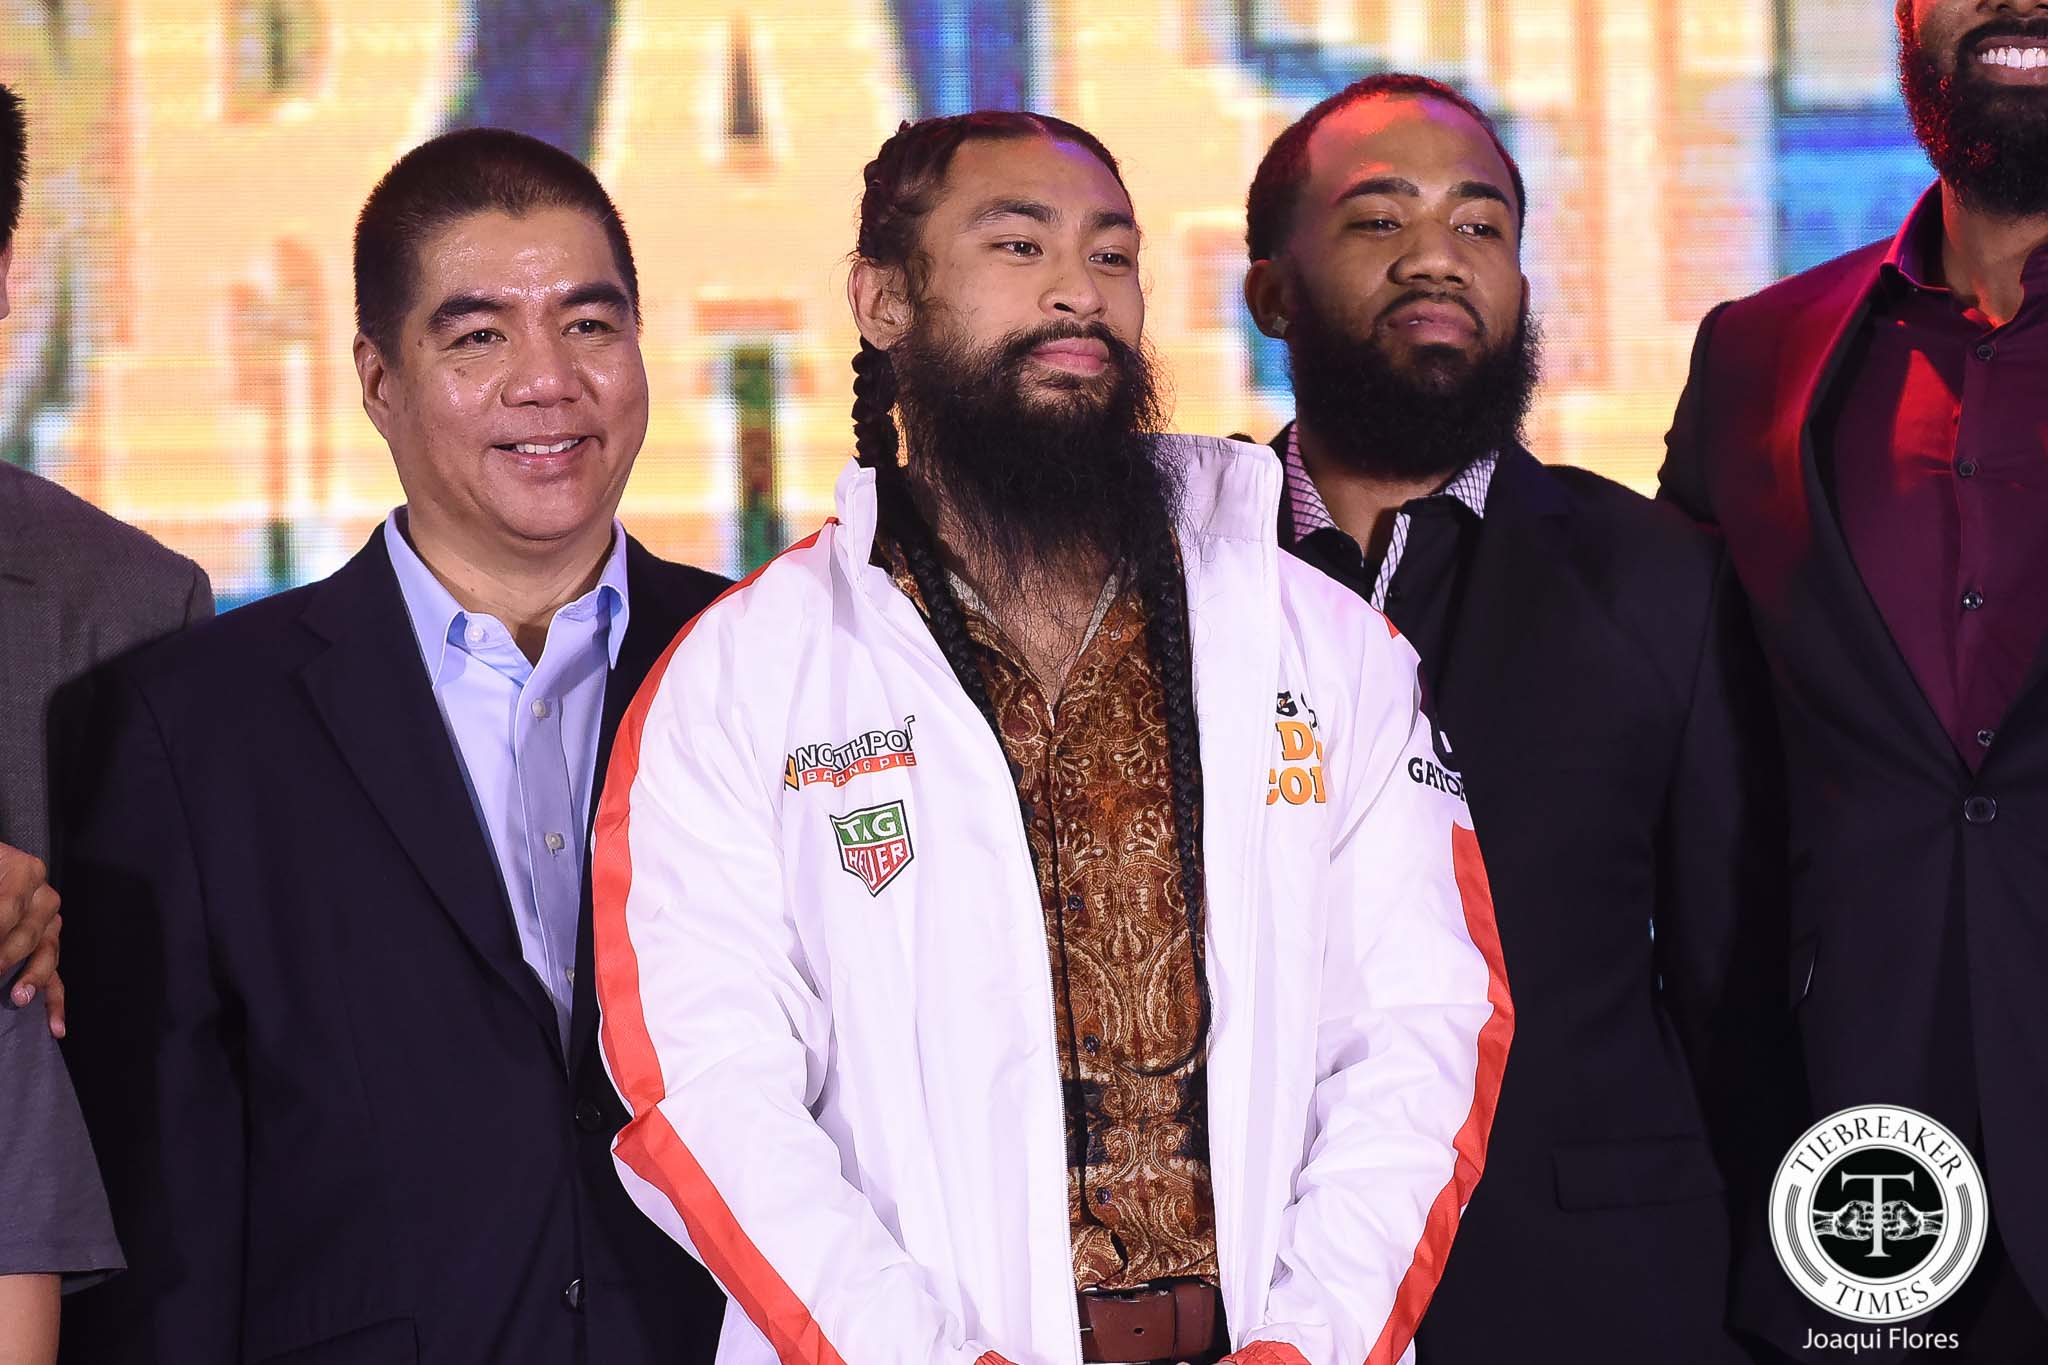 Tiebreaker Times Change in PBA Draft leads to entertaining event Basketball News PBA  Yeng Guiao Willie Marcial Stanley Pringle Richard del Rosario Phoenix Fuel Masters PBA Season 44 Northport Batang Pier NLEX Road Warriors Mo Tautuaa Jason Perkins Barangay Ginebra San Miguel Art dela Cruz 2018 PBA Draft